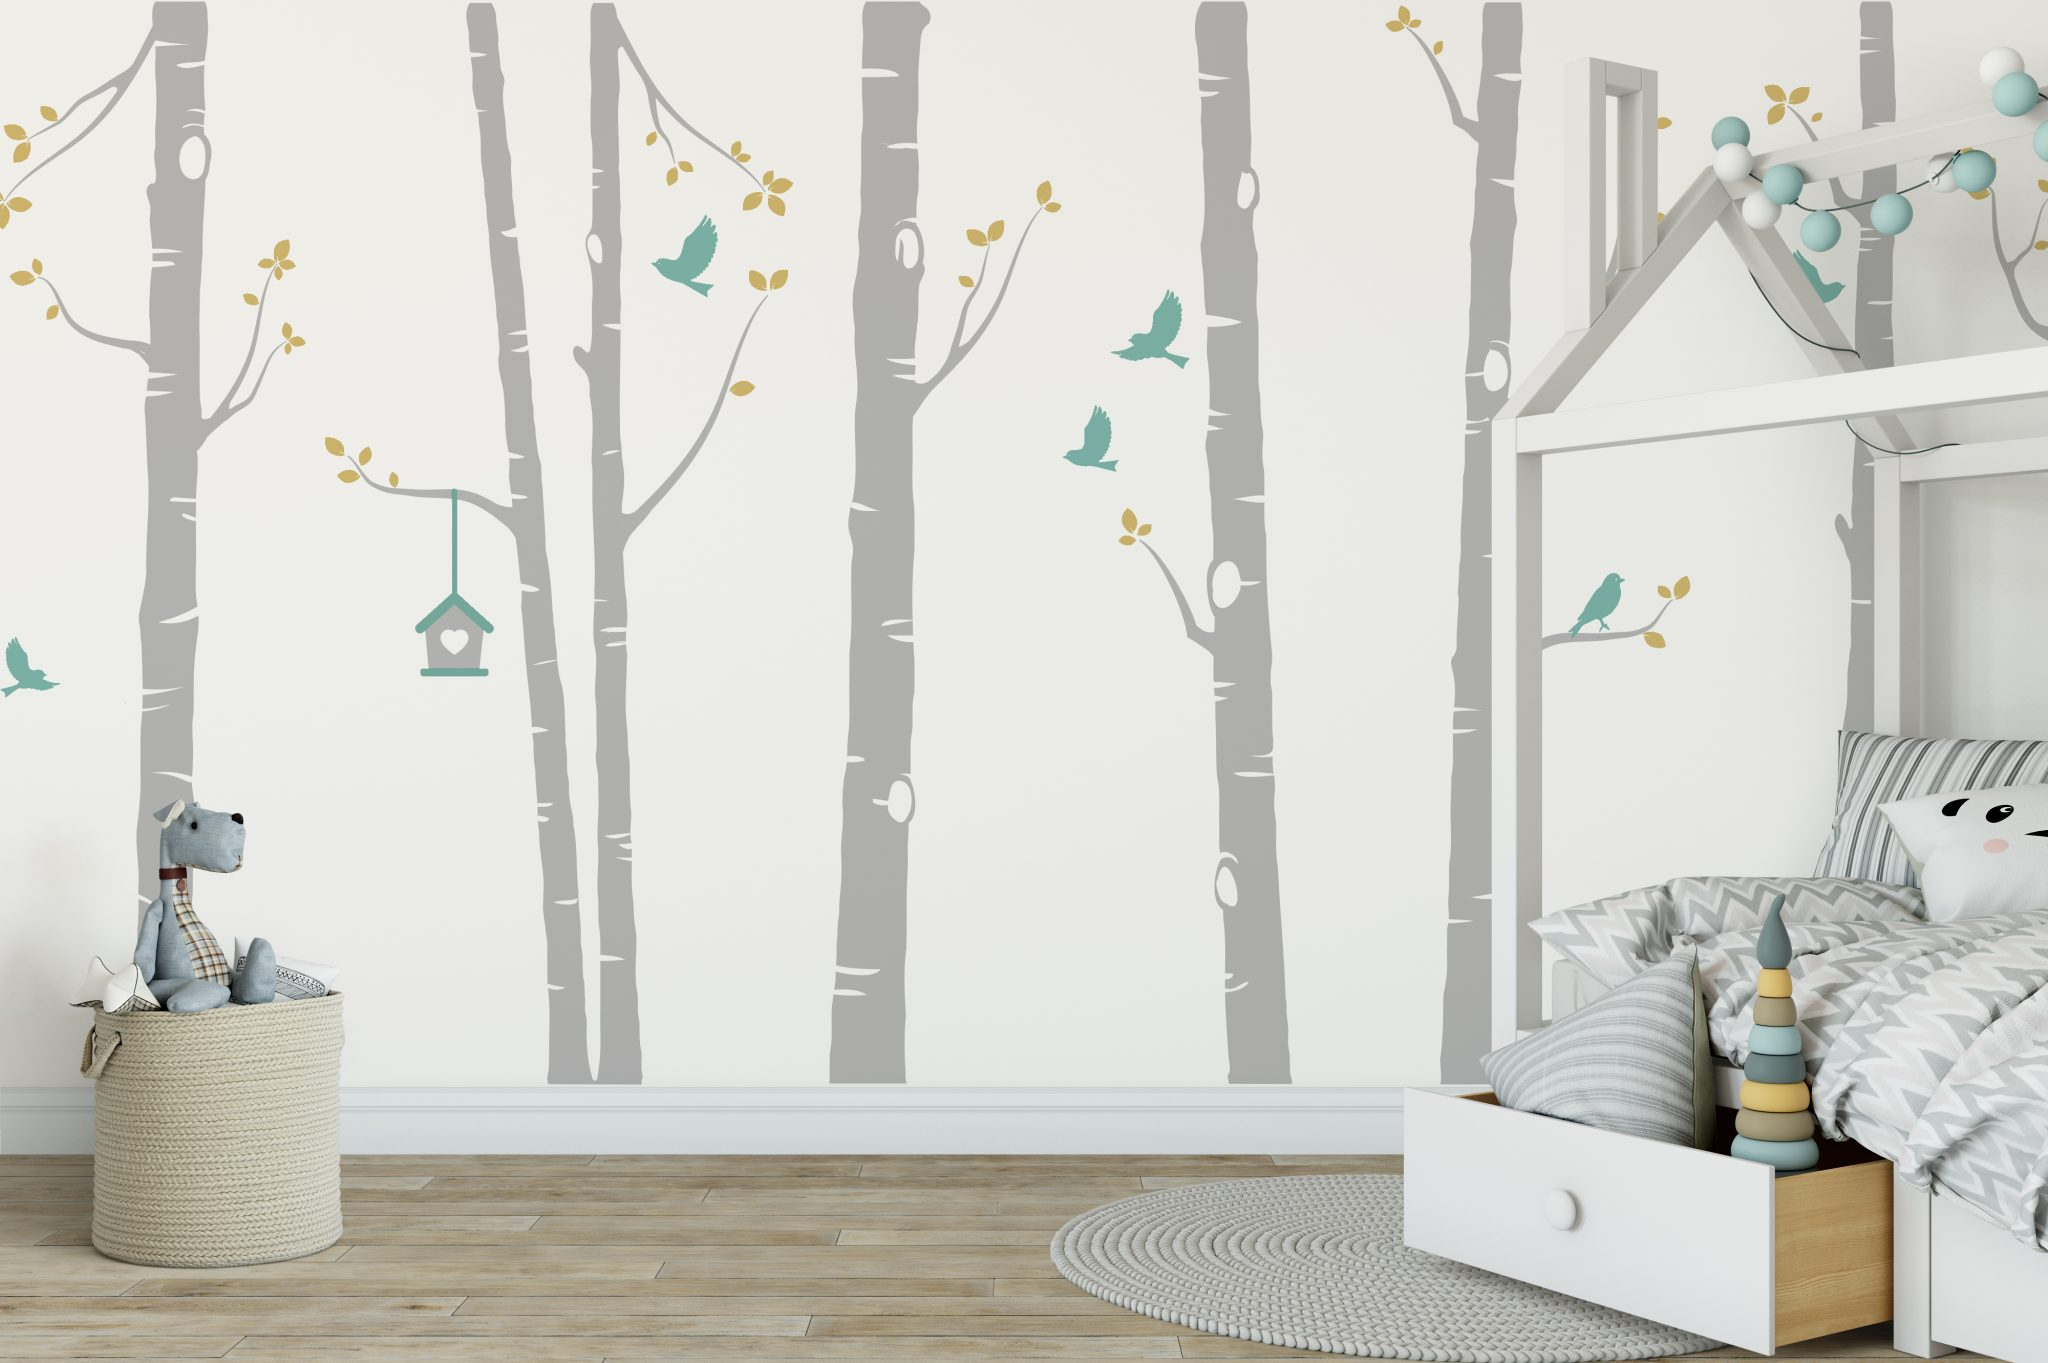 How To Remove Stickers From Car Window >> Birch Tree Wall Stickers | Birch Tree with Birds and Bird House